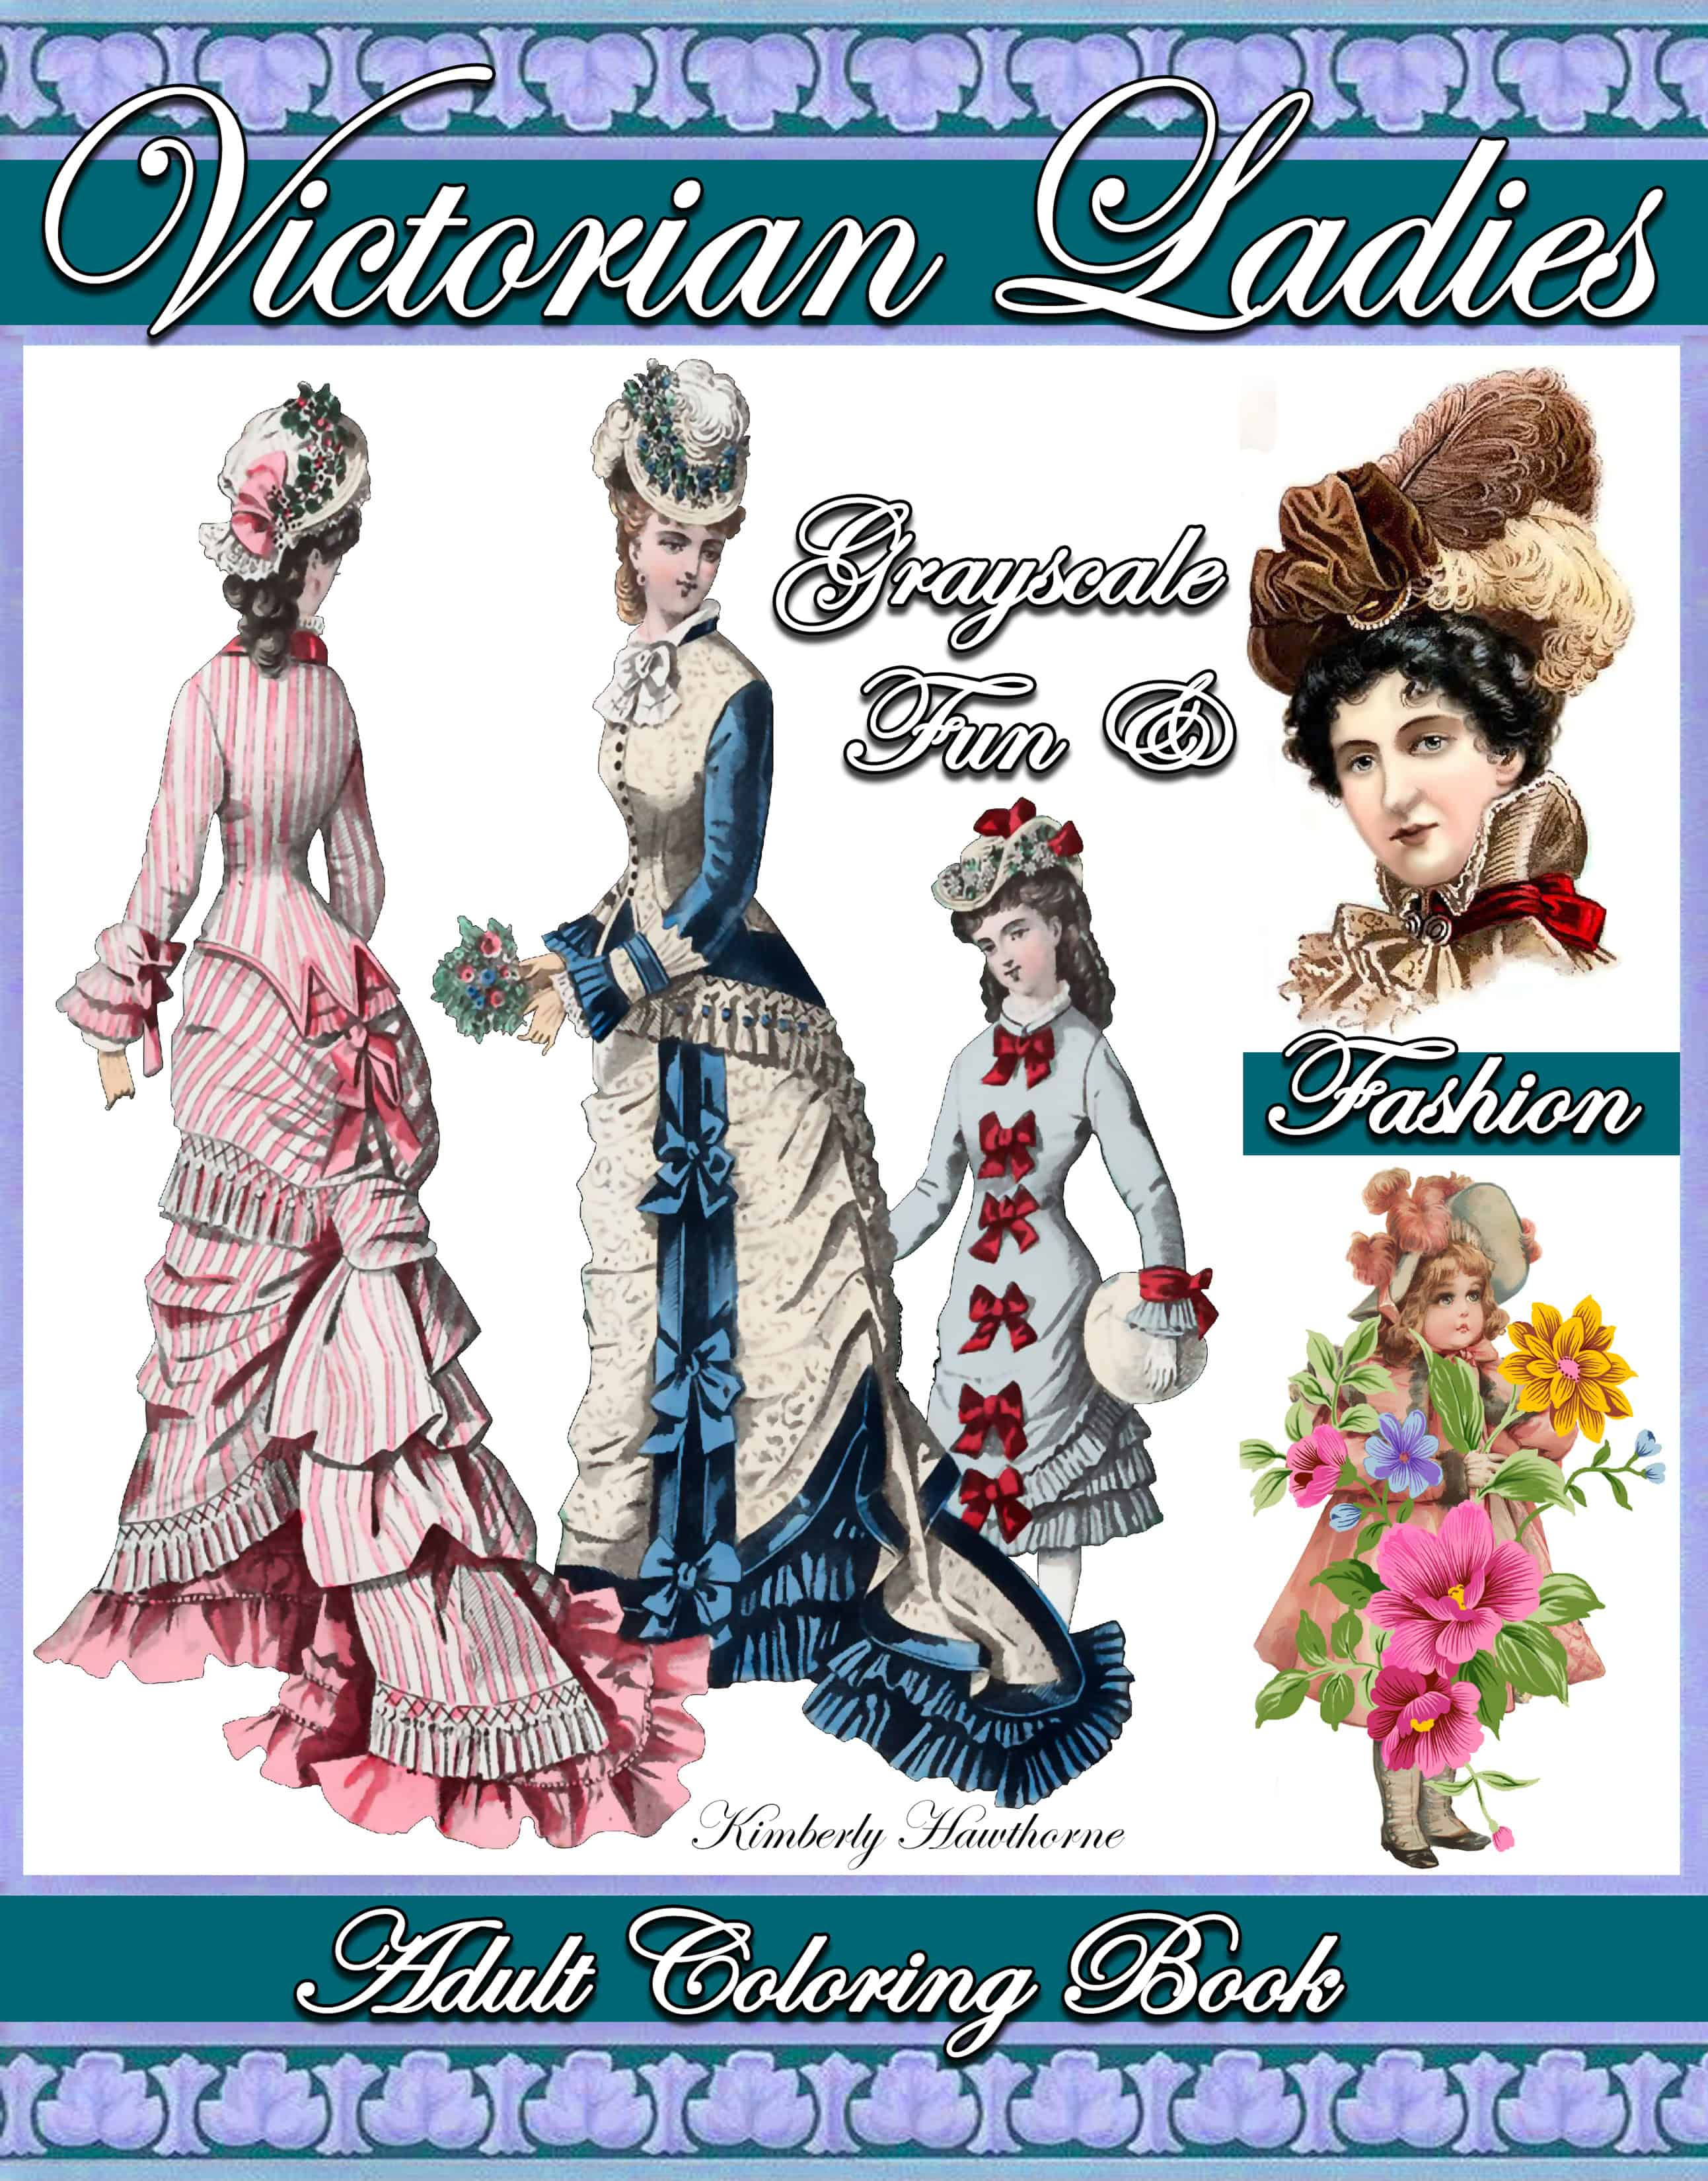 Victorian Ladies Fun & Fashion Coloring Book for Adults | Adult ...